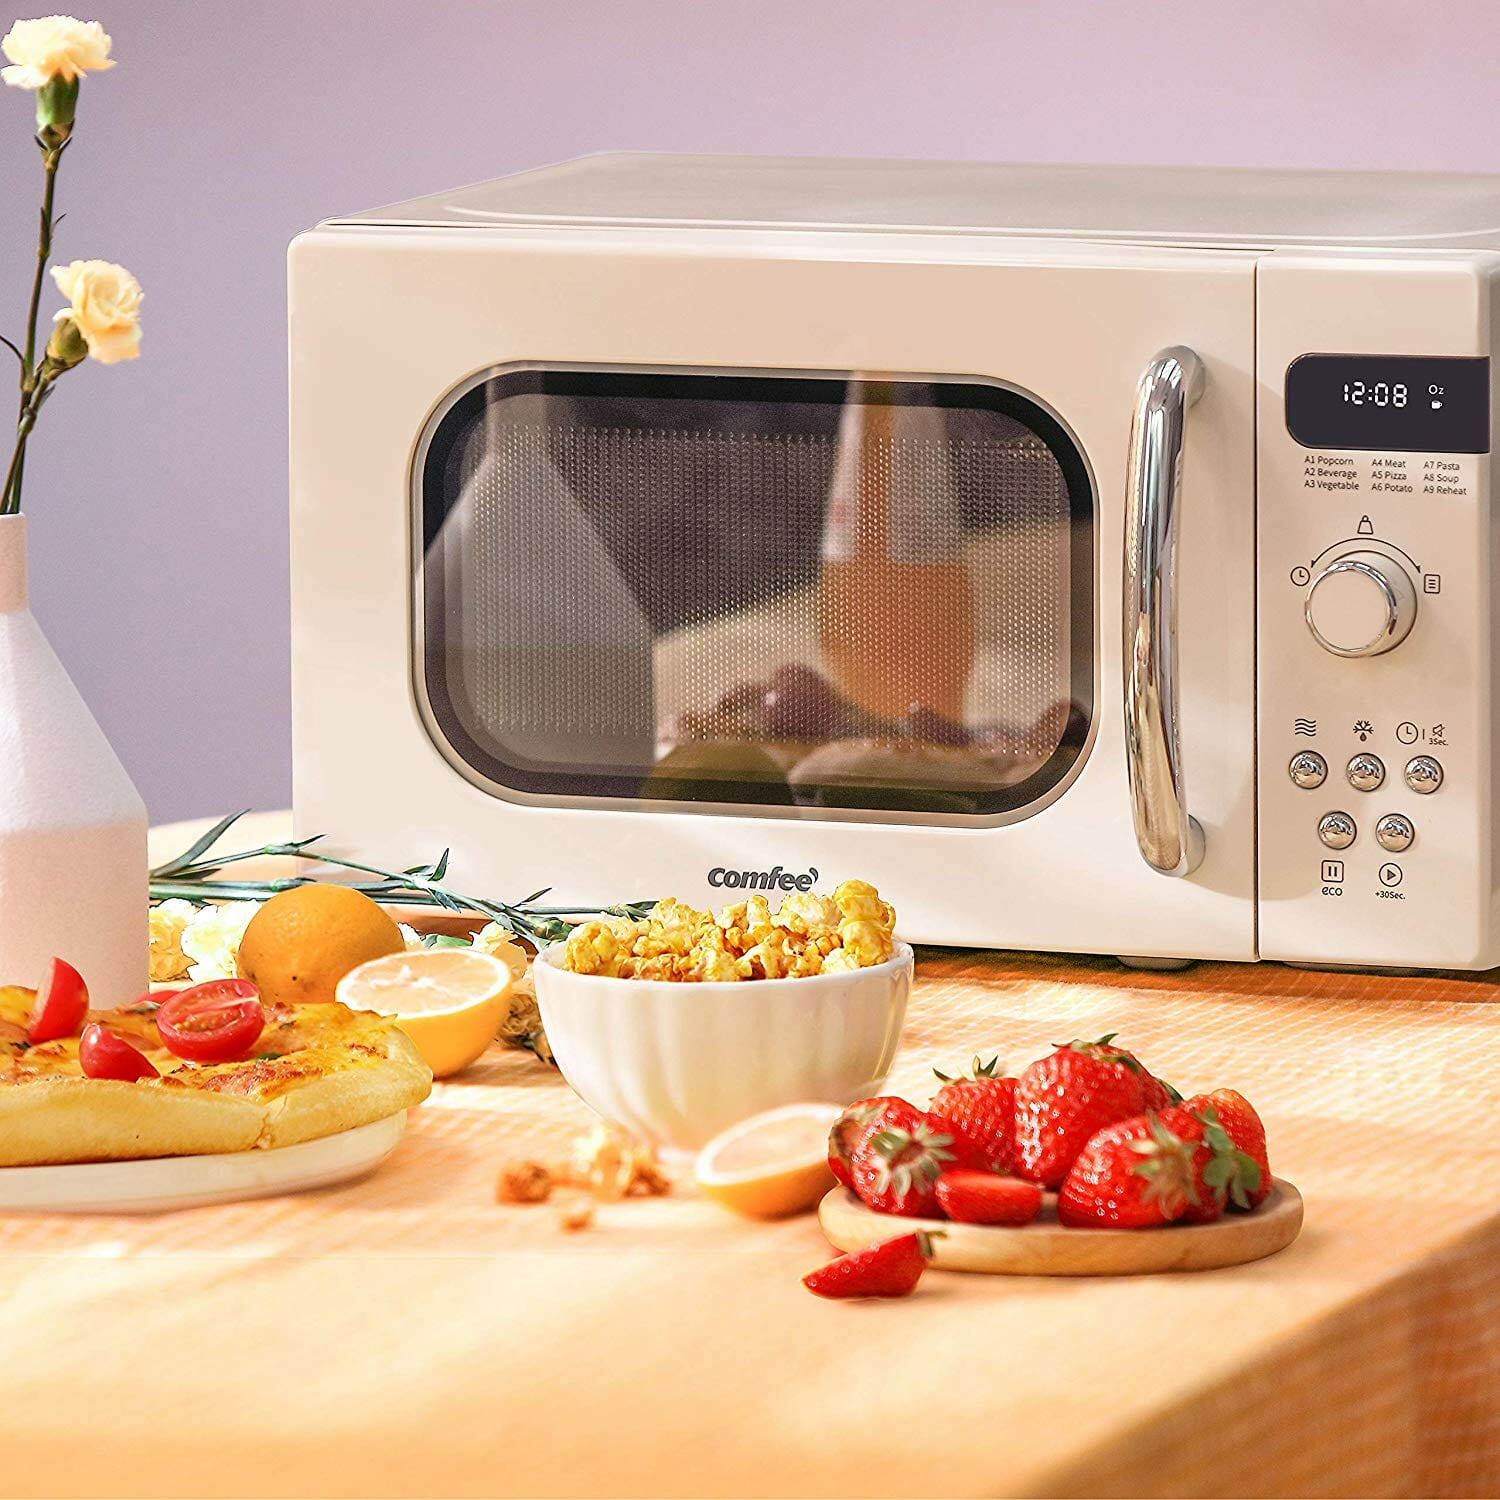 microwave electromagnetic Radiation